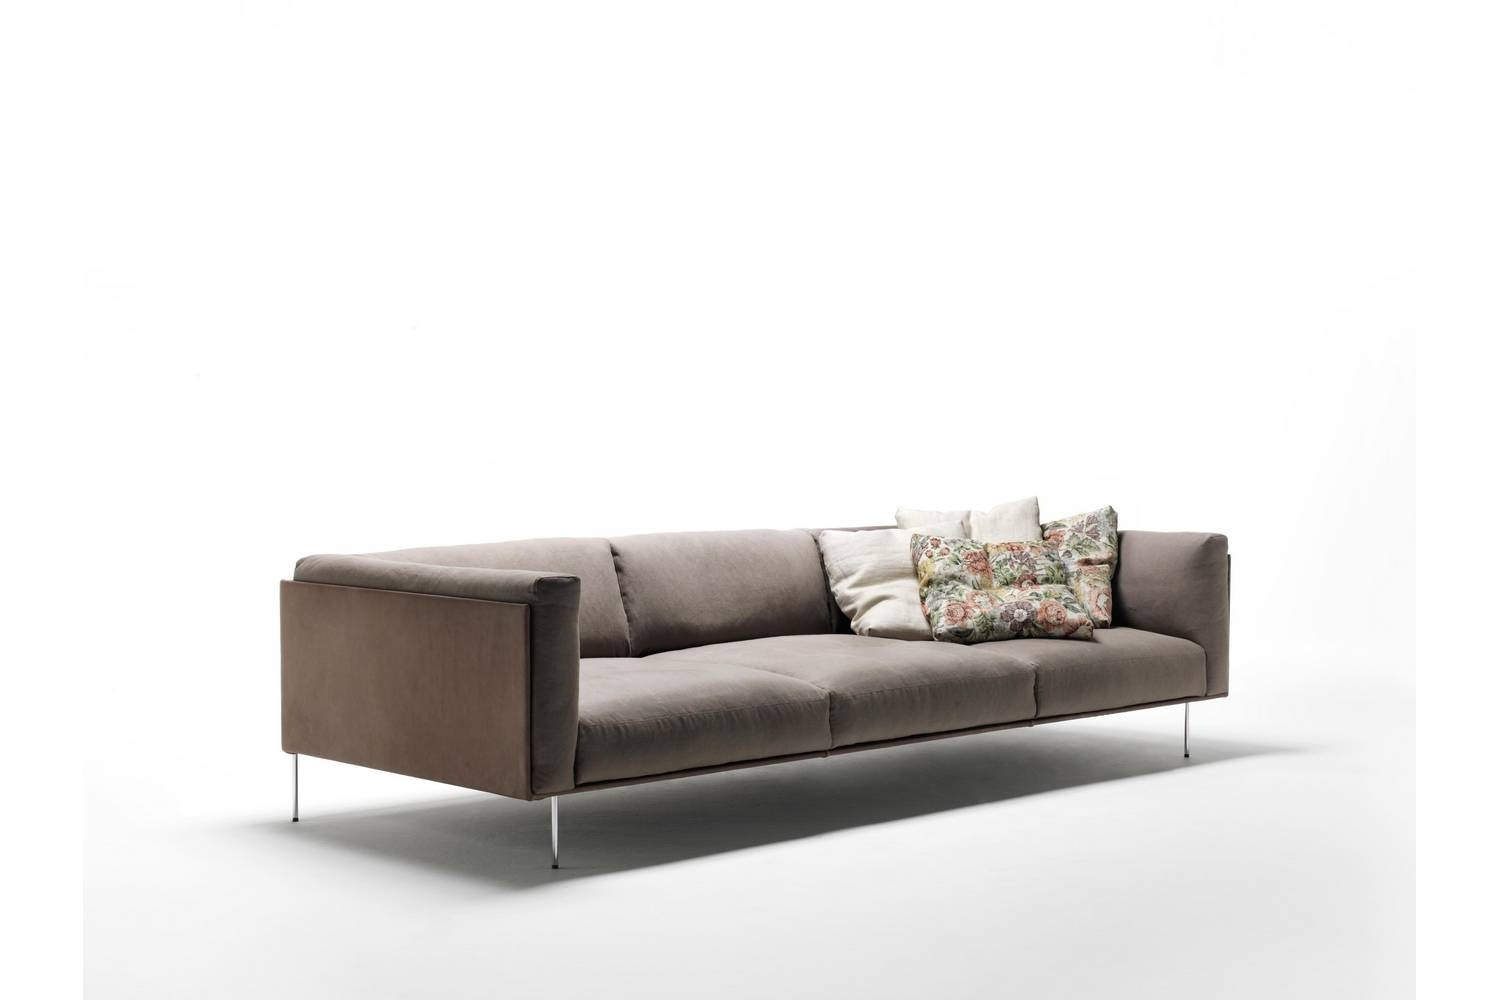 Rod.XL Sofa by Piero Lissoni for Living Divani